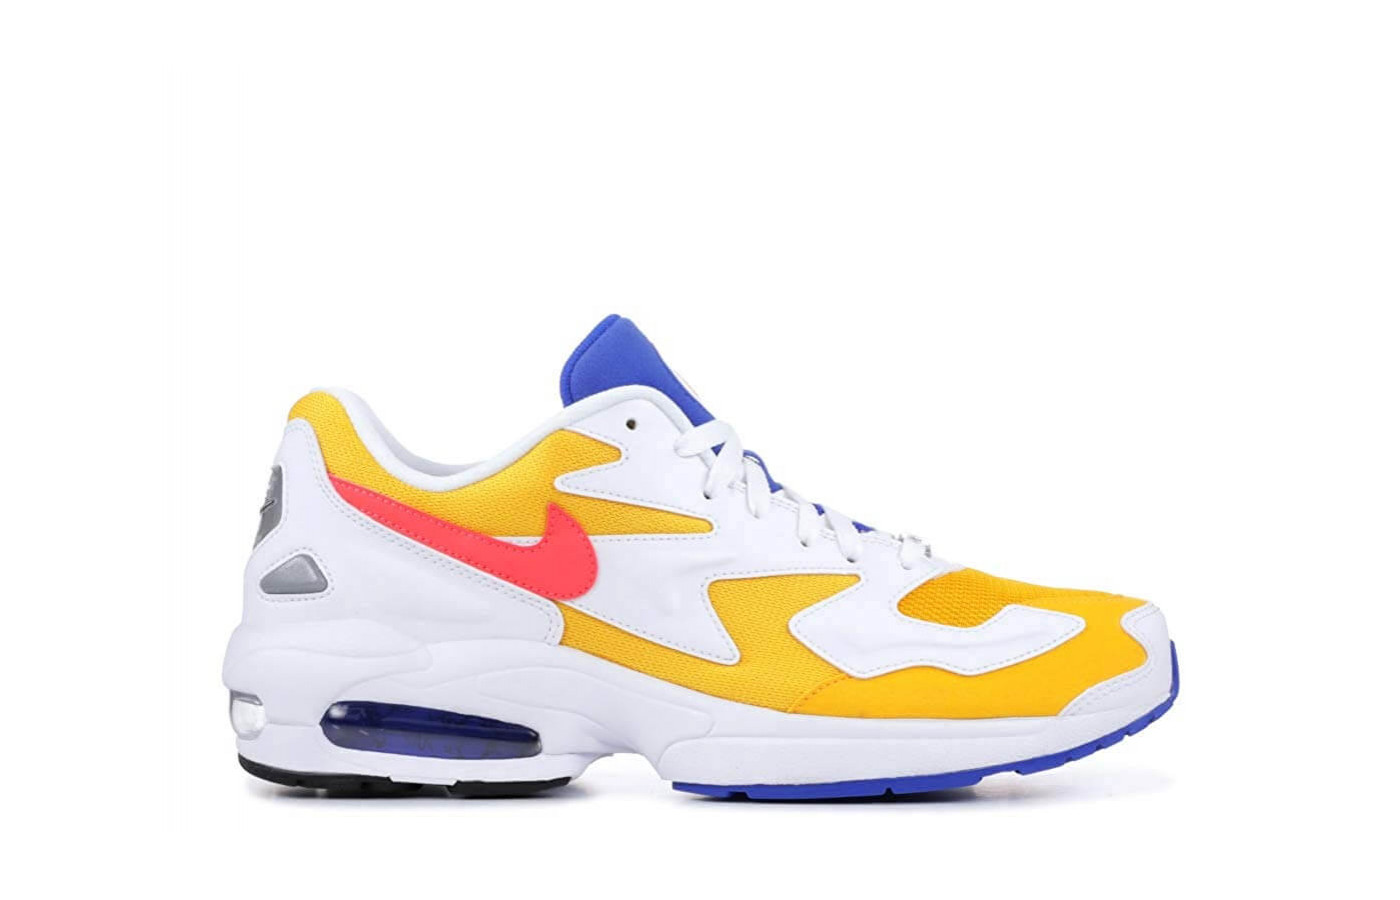 The Air Max2 has a responsive wear, thanks to its Max Air heel unit.